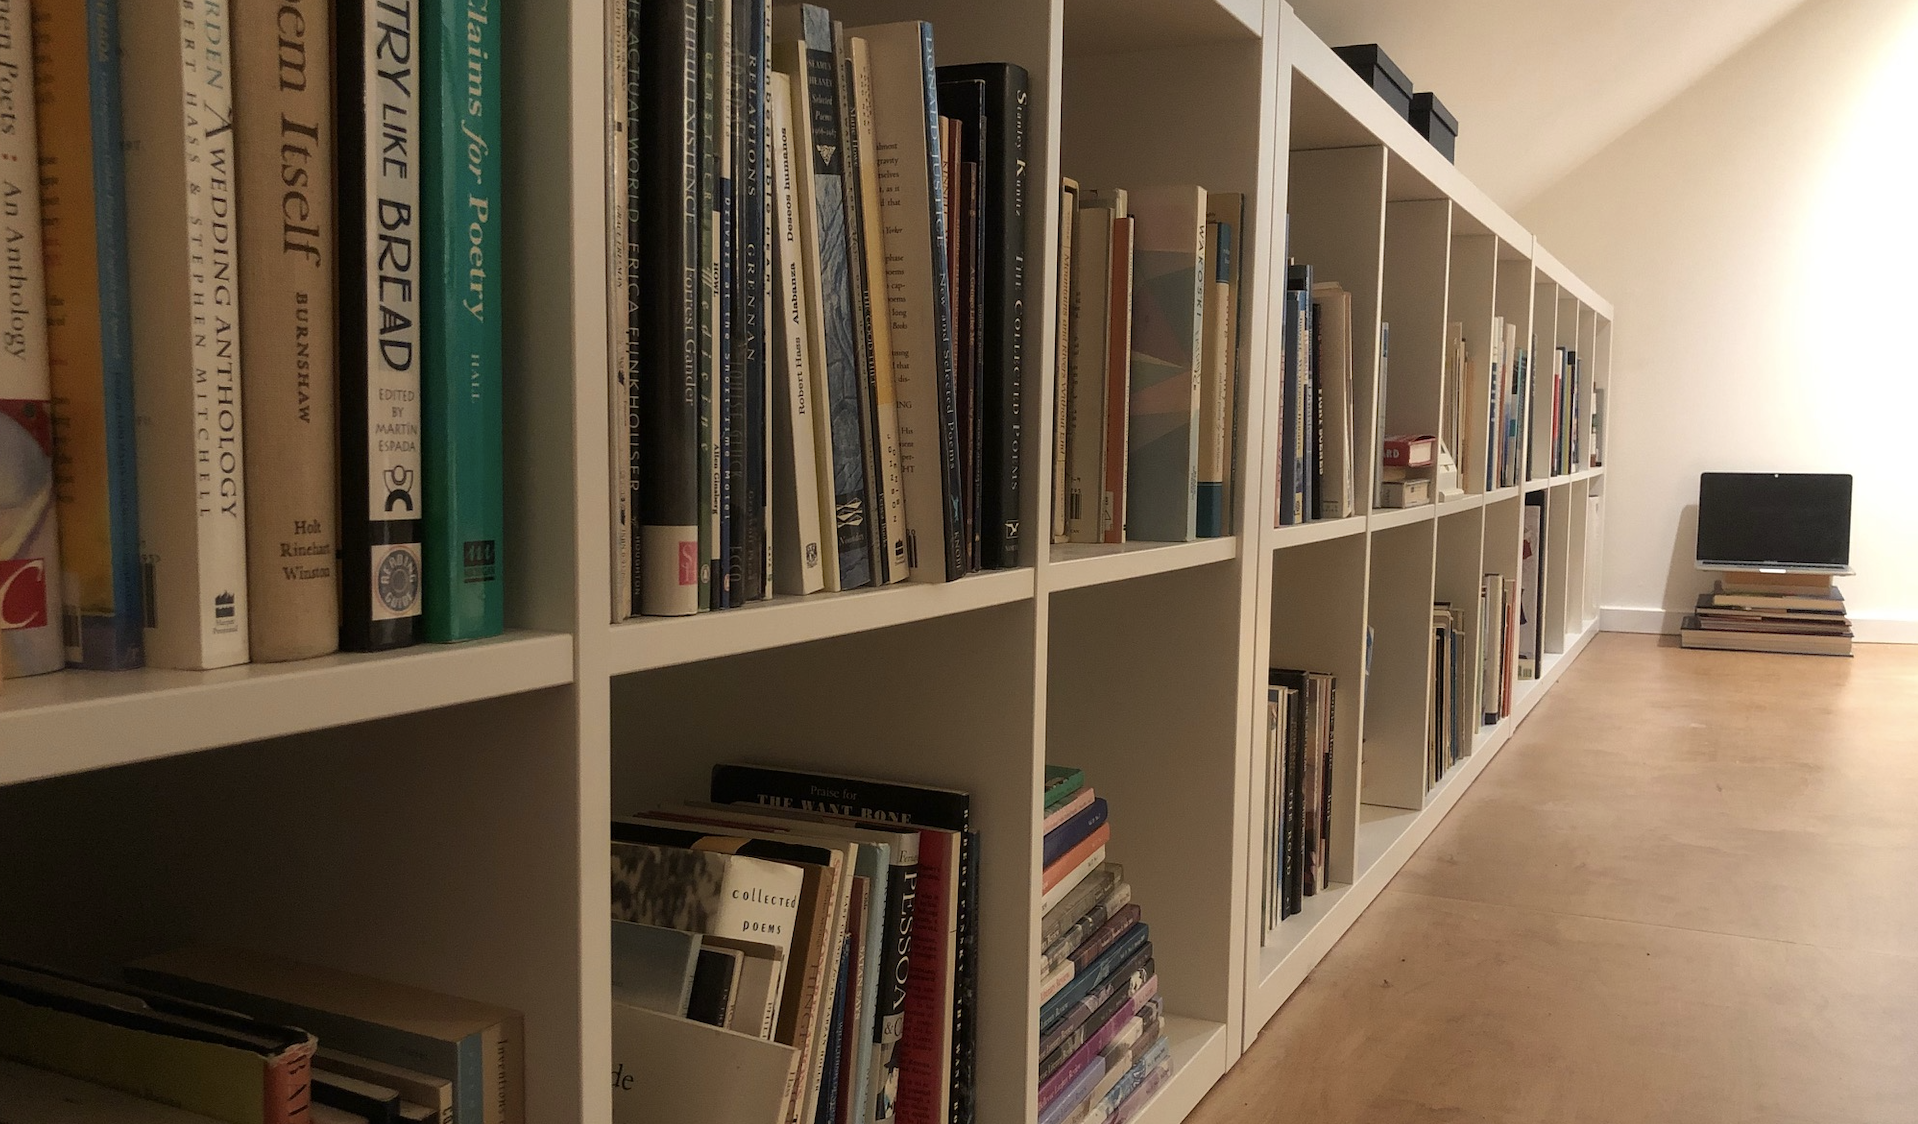 A long bookshelf full of books with a computer laptop at one end